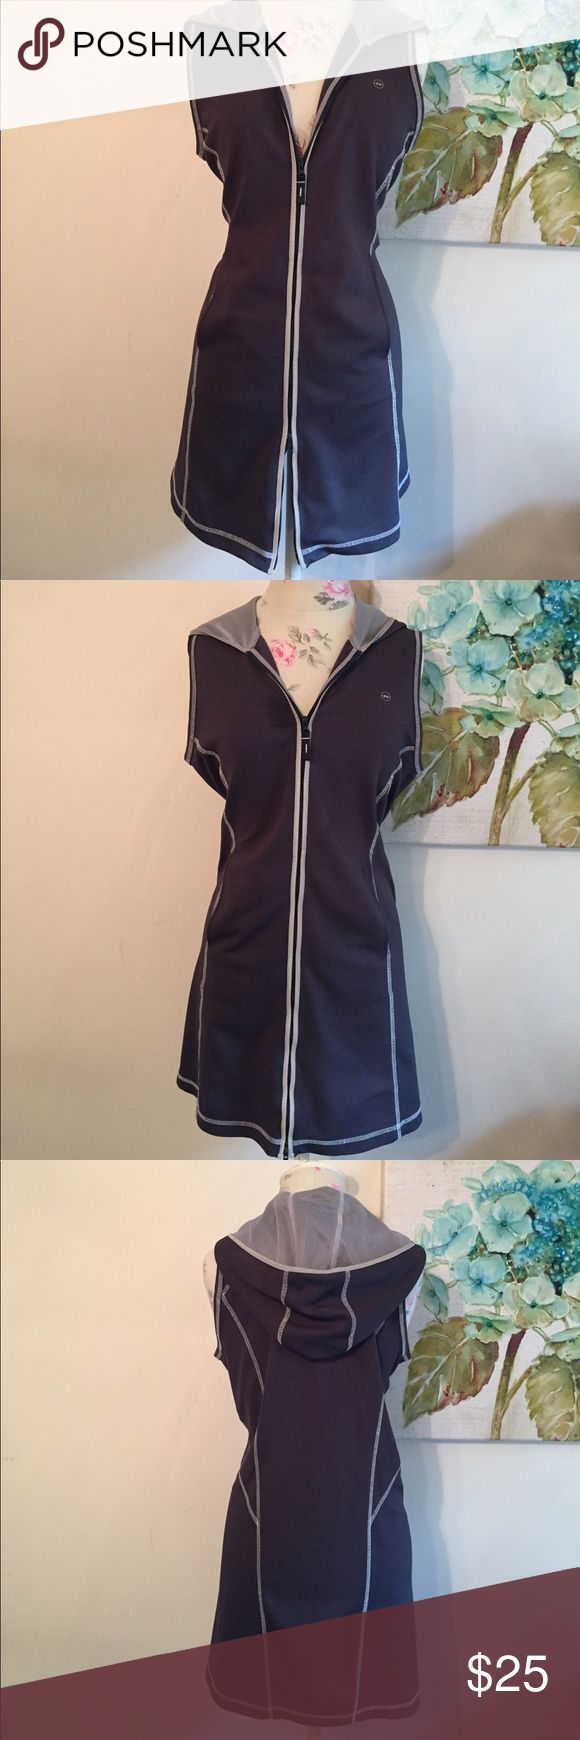 Nautica Athleisure Tunic Dress Blue-gray hooded sport tunic/ dress with reflective trim and decorative stitching. Polyester & Spandex blend. Side slip pockets. Double zipper can open from bottom or top. Sporty chic for the gym, errands or the big game. Great over leggings. Nautica Dresses Midi